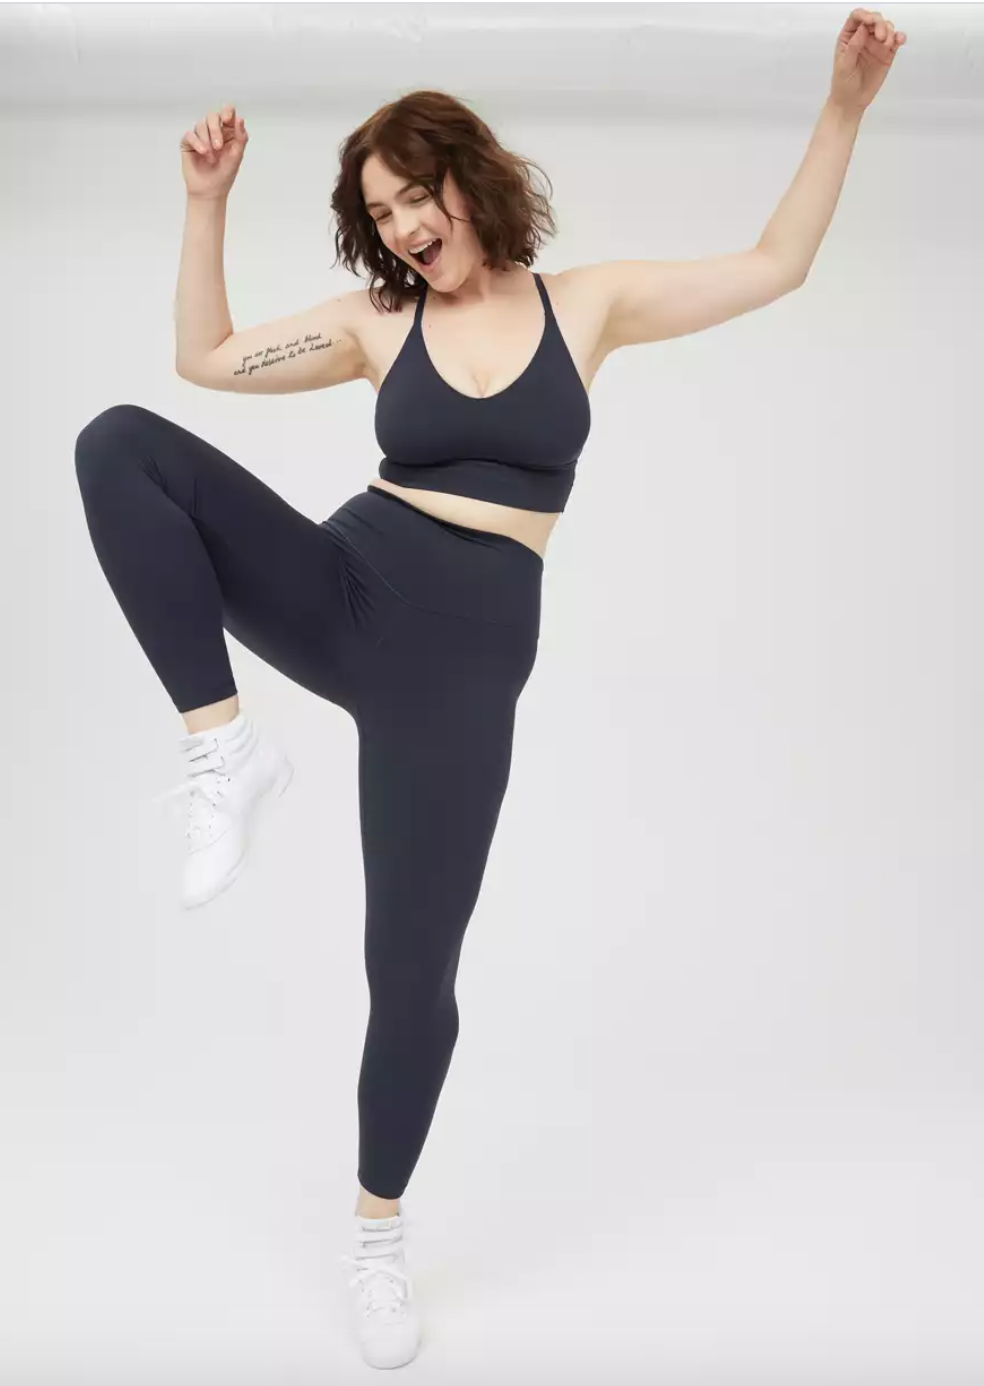 a model in navy blue leggings